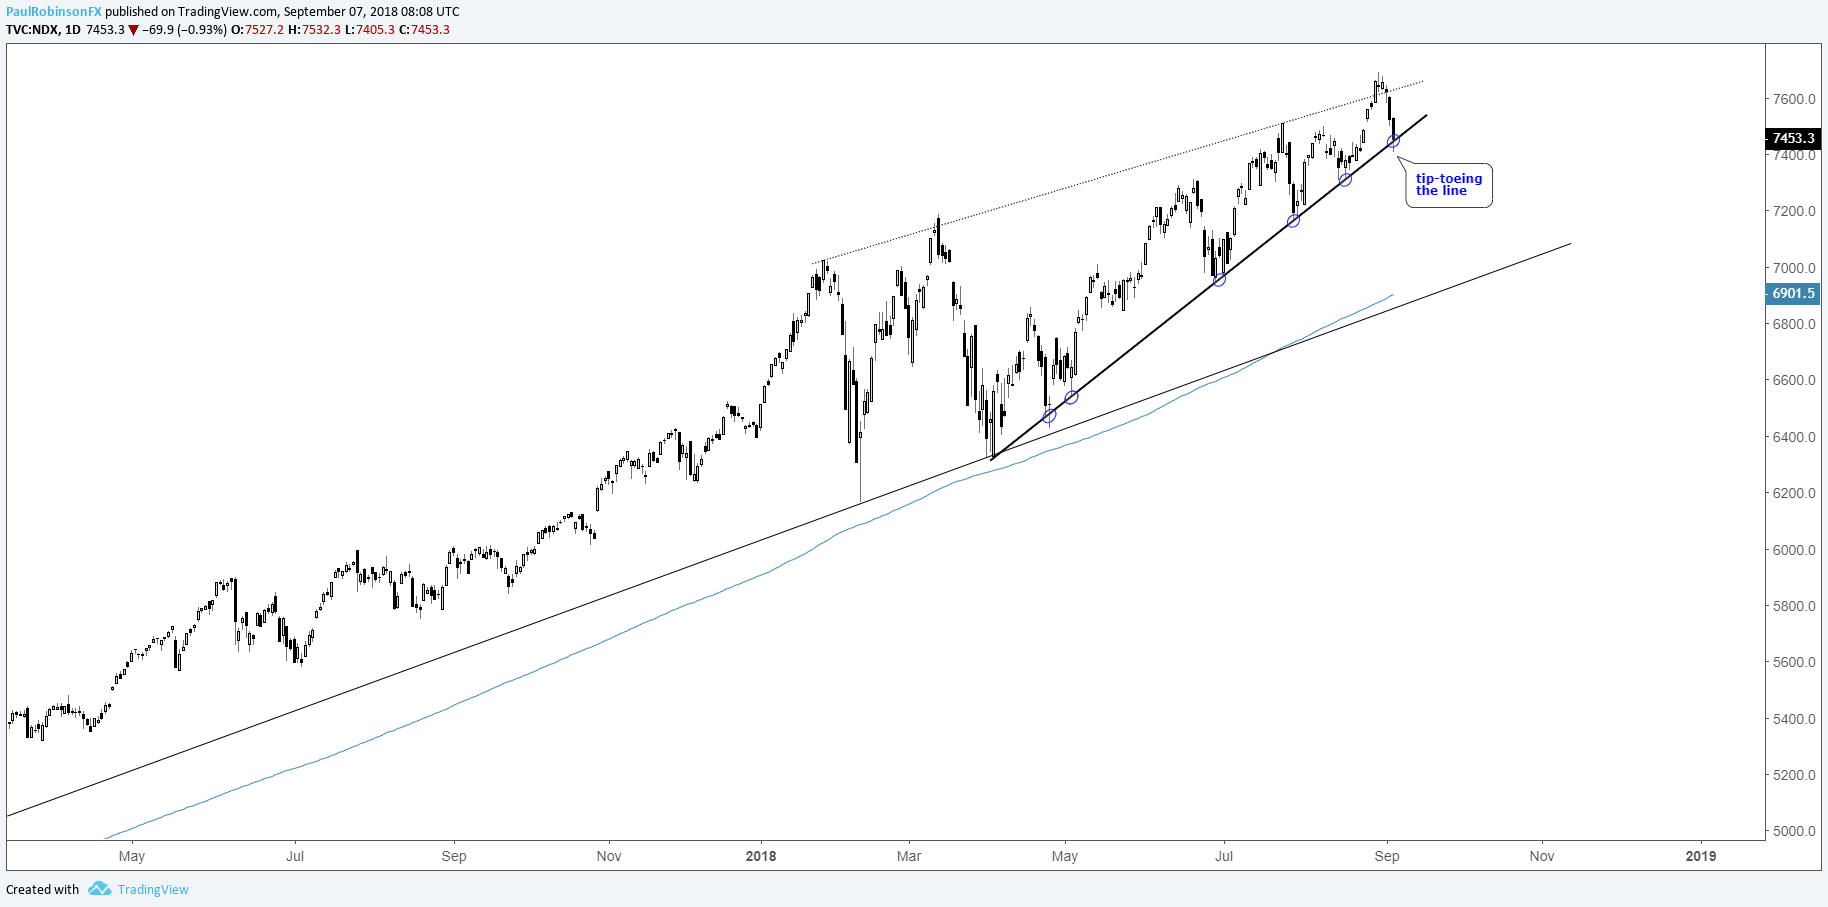 Nasdaq 100 Faang Charts And What They Could Mean For The